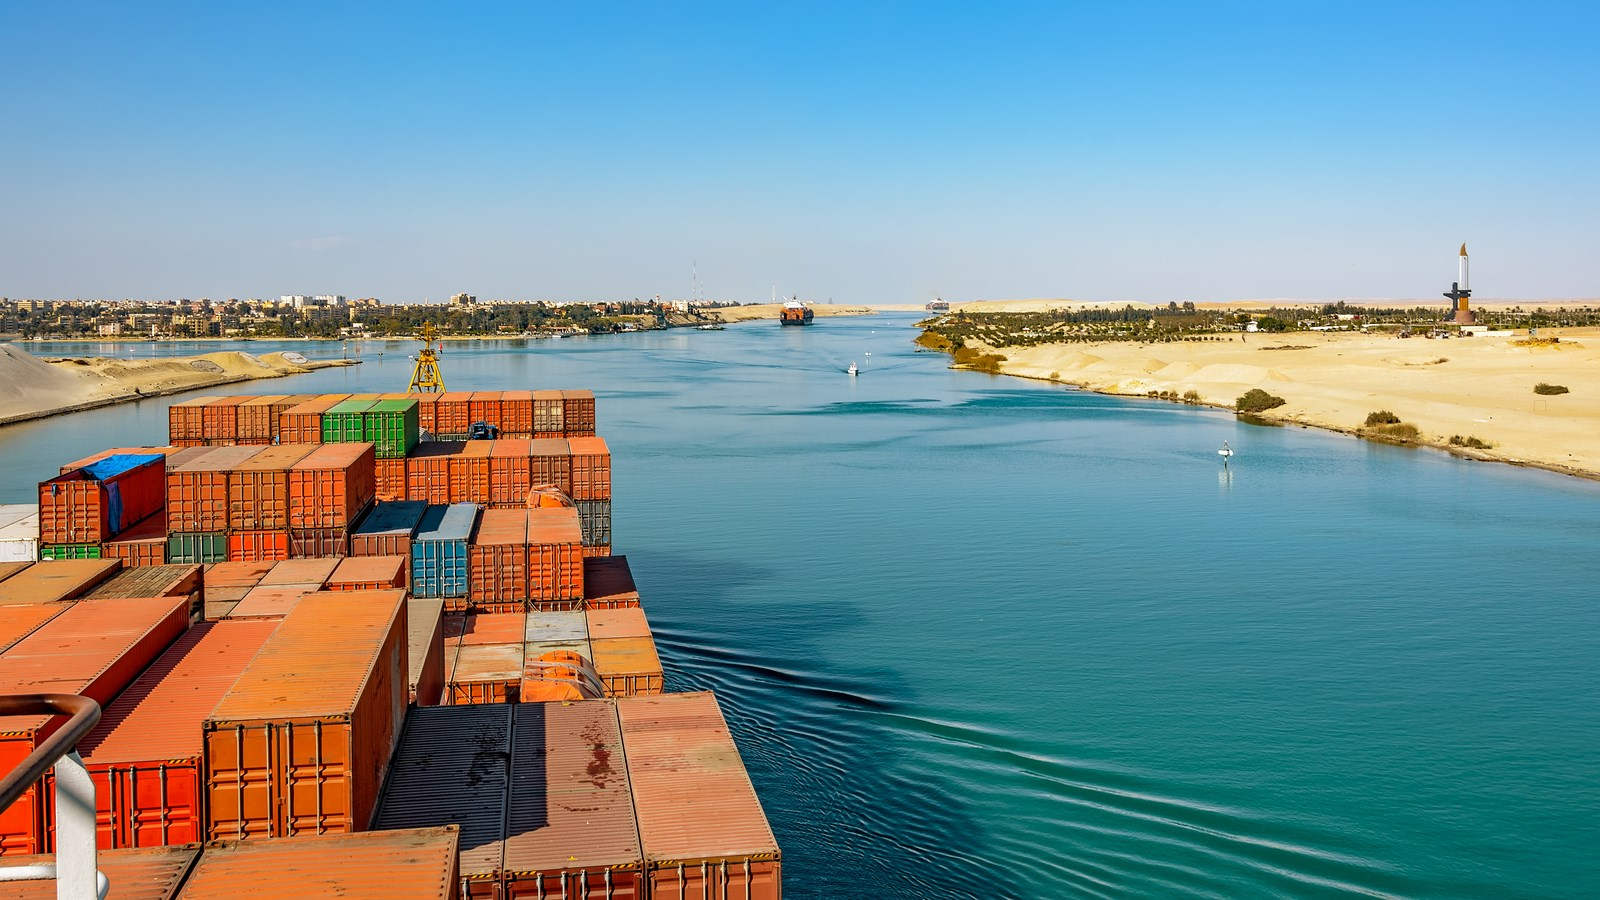 WSS deploys dedicated team for Suez Canal | SAFETY4SEA